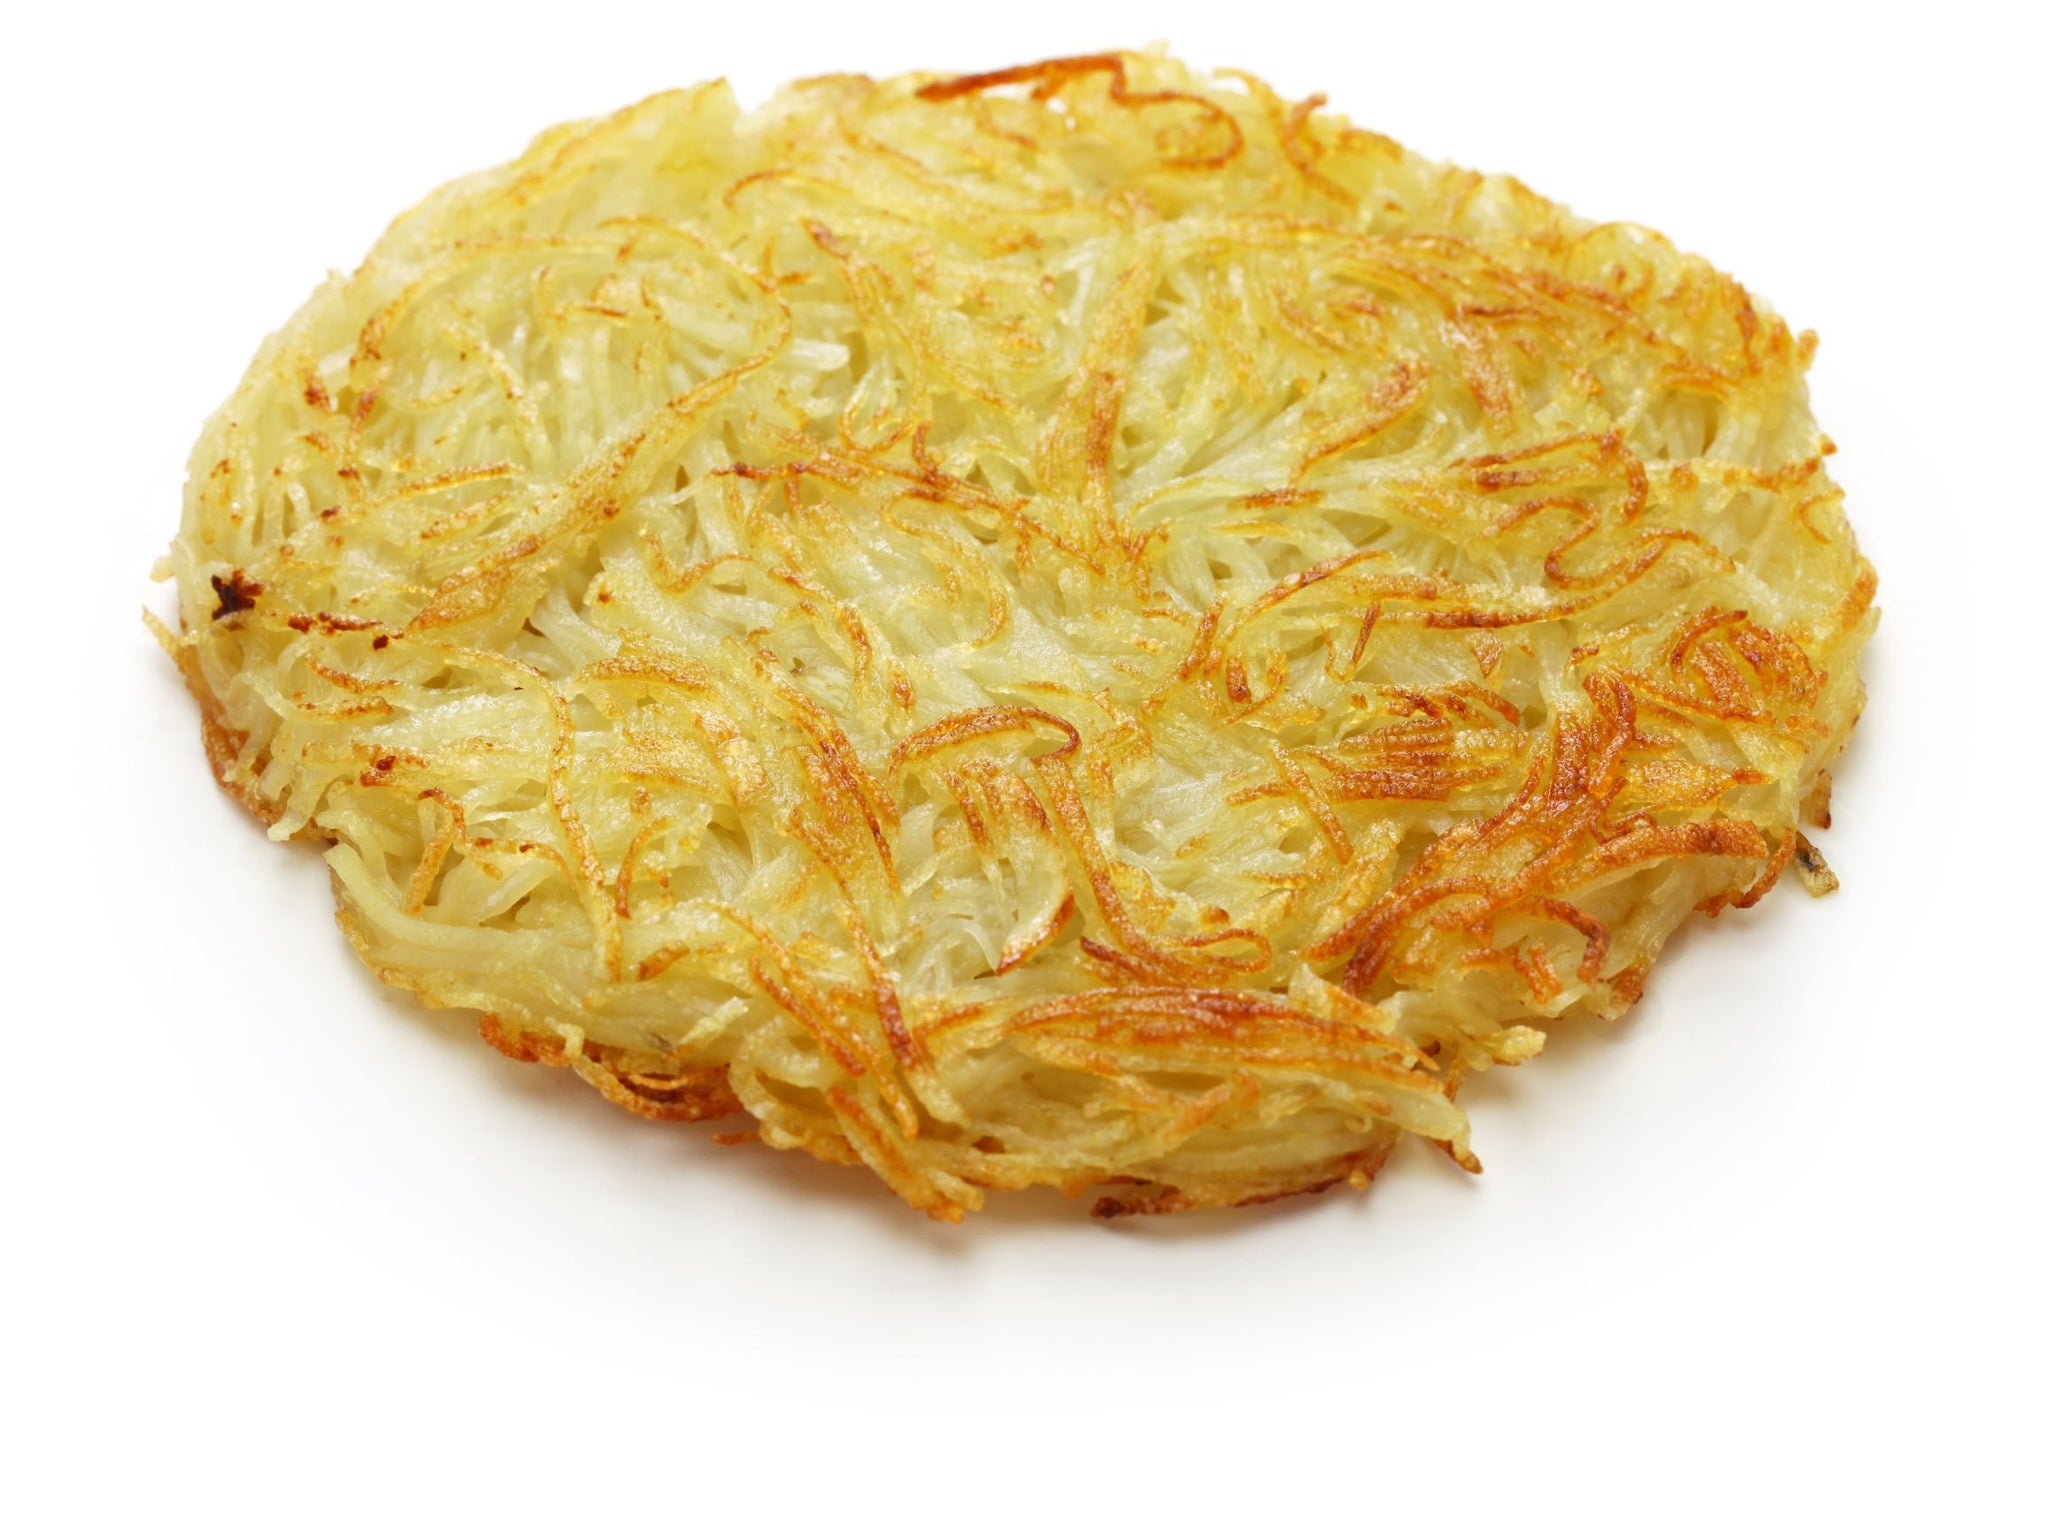 Sysco Imperial Frozen Loose Shredded Hashbrowns 3 lb - 6 Pack [$2.03/lb]